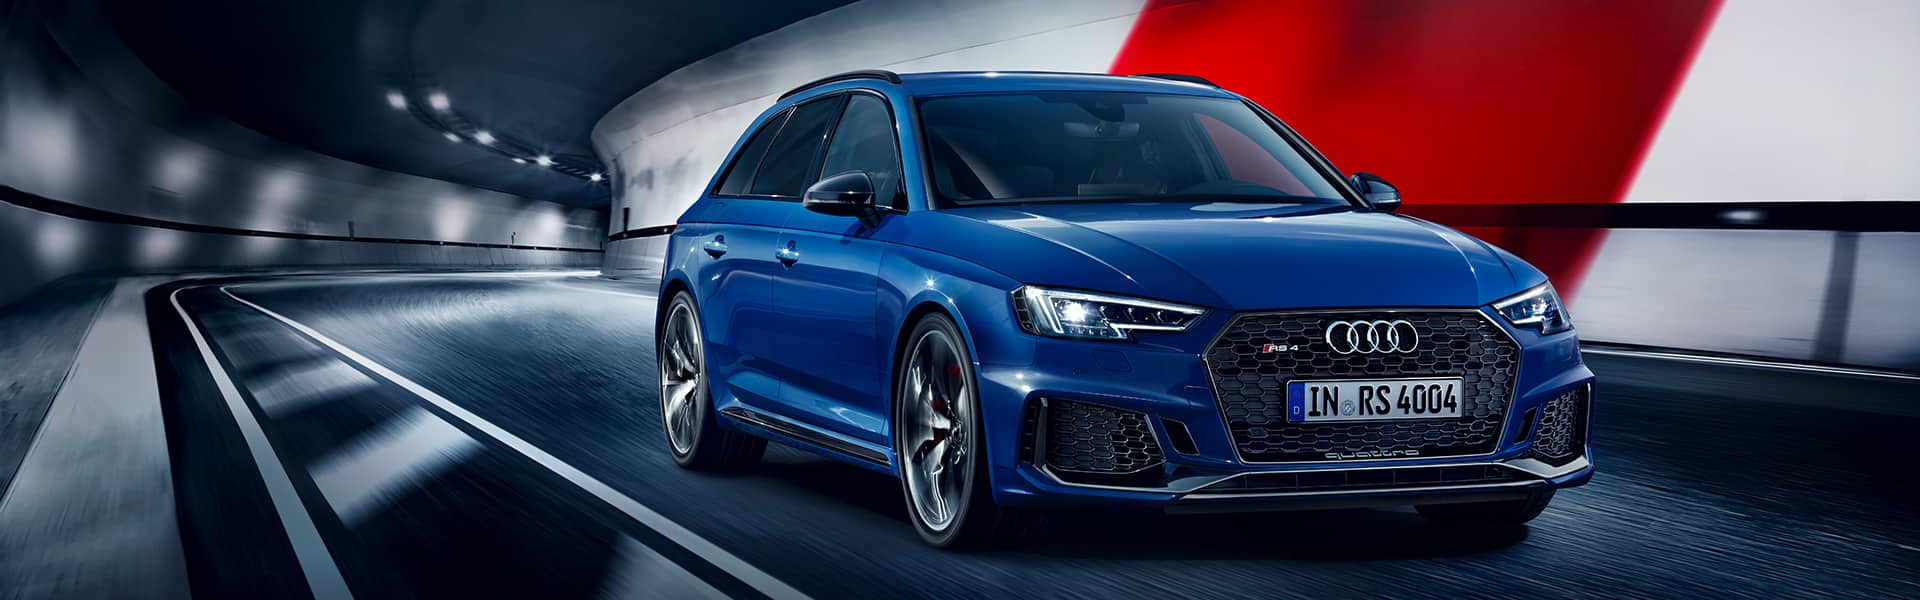 The new Audi RS 4 Avant combines performance with everyday convenience.